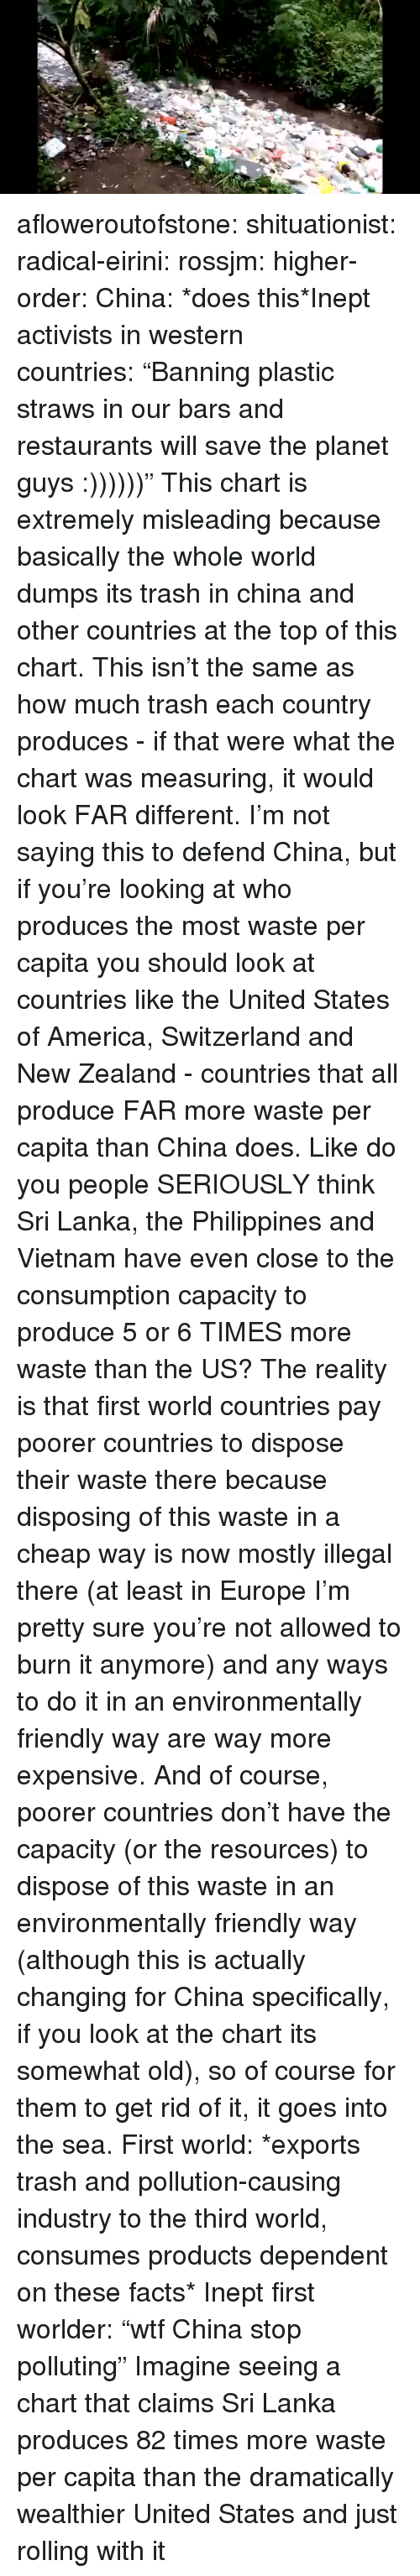 """America, Facts, and Trash: afloweroutofstone:  shituationist:  radical-eirini:  rossjm:  higher-order:  China: *does this*Inept activists in western countries:""""Banning plastic straws in our bars and restaurants will save the planet guys :))))))""""  This chart is extremely misleading because basically the whole world dumps its trash in china and other countries at the top of this chart. This isn't the same as how much trash each country produces - if that were what the chart was measuring, it would look FAR different. I'm not saying this to defend China, but if you're looking at who produces the most waste per capita you should look at countries like the United States of America, Switzerland and New Zealand - countries that all produce FAR more waste per capita than China does. Like do you people SERIOUSLY think Sri Lanka, the Philippines and Vietnam have even close to the consumption capacity to produce 5 or 6 TIMES more waste than the US? The reality is that first world countries pay poorer countries to dispose their waste there because disposing of this waste in a cheap way is now mostly illegal there (at least in Europe I'm pretty sure you're not allowed to burn it anymore) and any ways to do it in an environmentally friendly way are way more expensive. And of course, poorer countries don't have the capacity (or the resources) to dispose of this waste in an environmentally friendly way (although this is actually changing for China specifically, if you look at the chart its somewhat old), so of course for them to get rid of it, it goes into the sea.  First world: *exports trash and pollution-causing industry to the third world, consumes products dependent on these facts* Inept first worlder: """"wtf China stop polluting""""  Imagine seeing a chart that claims Sri Lanka produces 82 times more waste per capita than the dramatically wealthier United States and just rolling with it"""